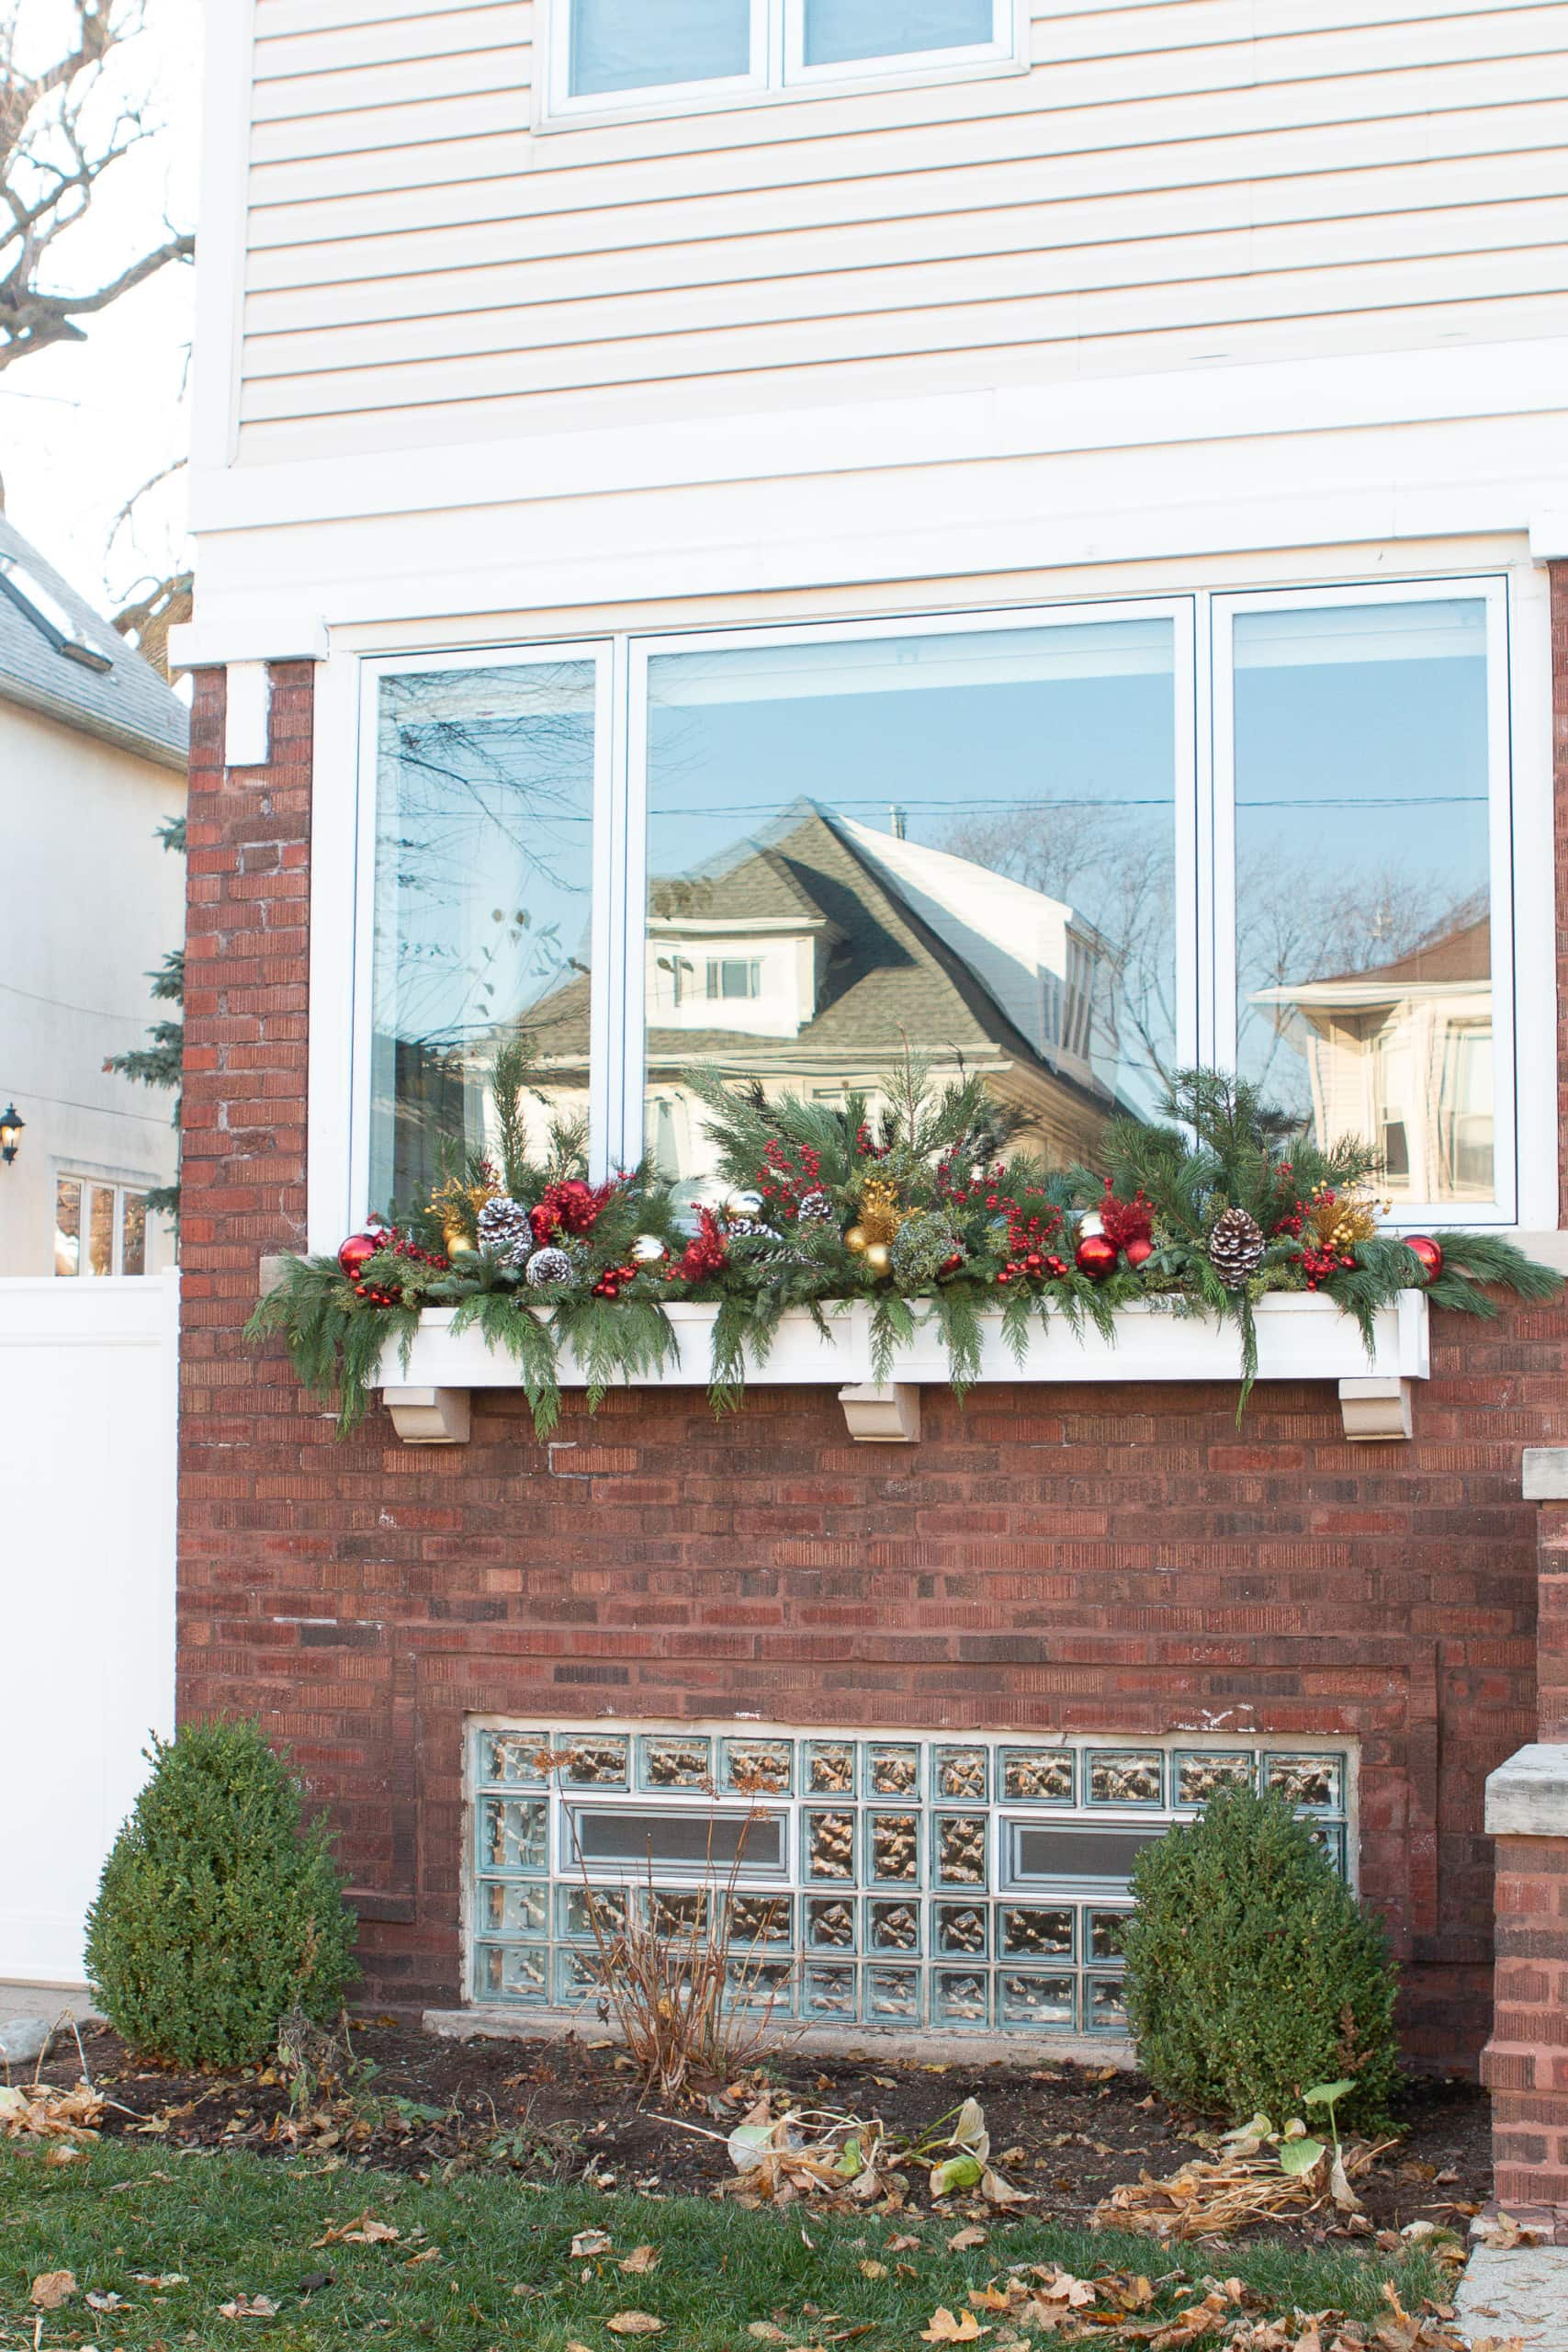 Our holiday window box